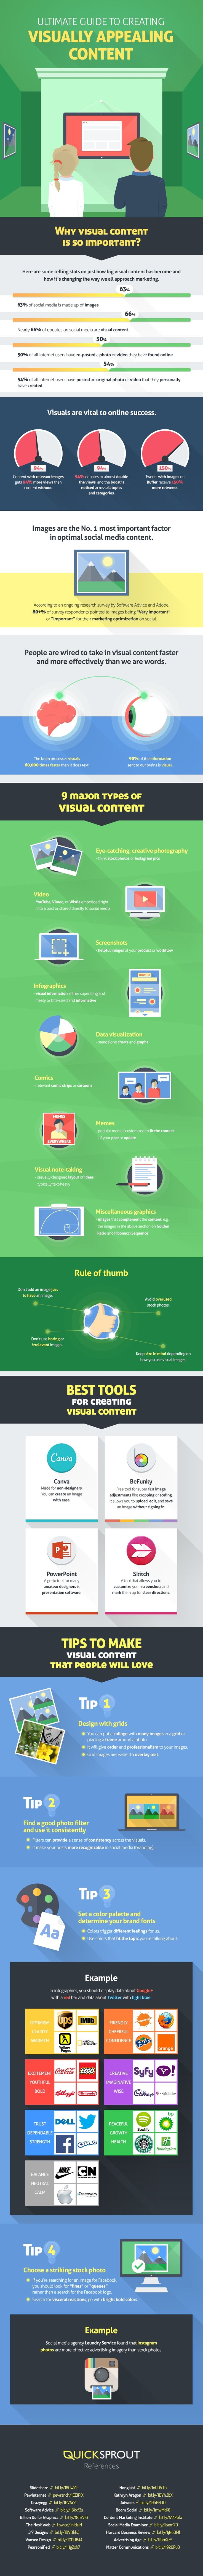 In this infographic, created by Quicksprout, you'll discover why visual content is so important, what types of visual content work best in social media, 4 best tools and tips for creating visually appealing content.